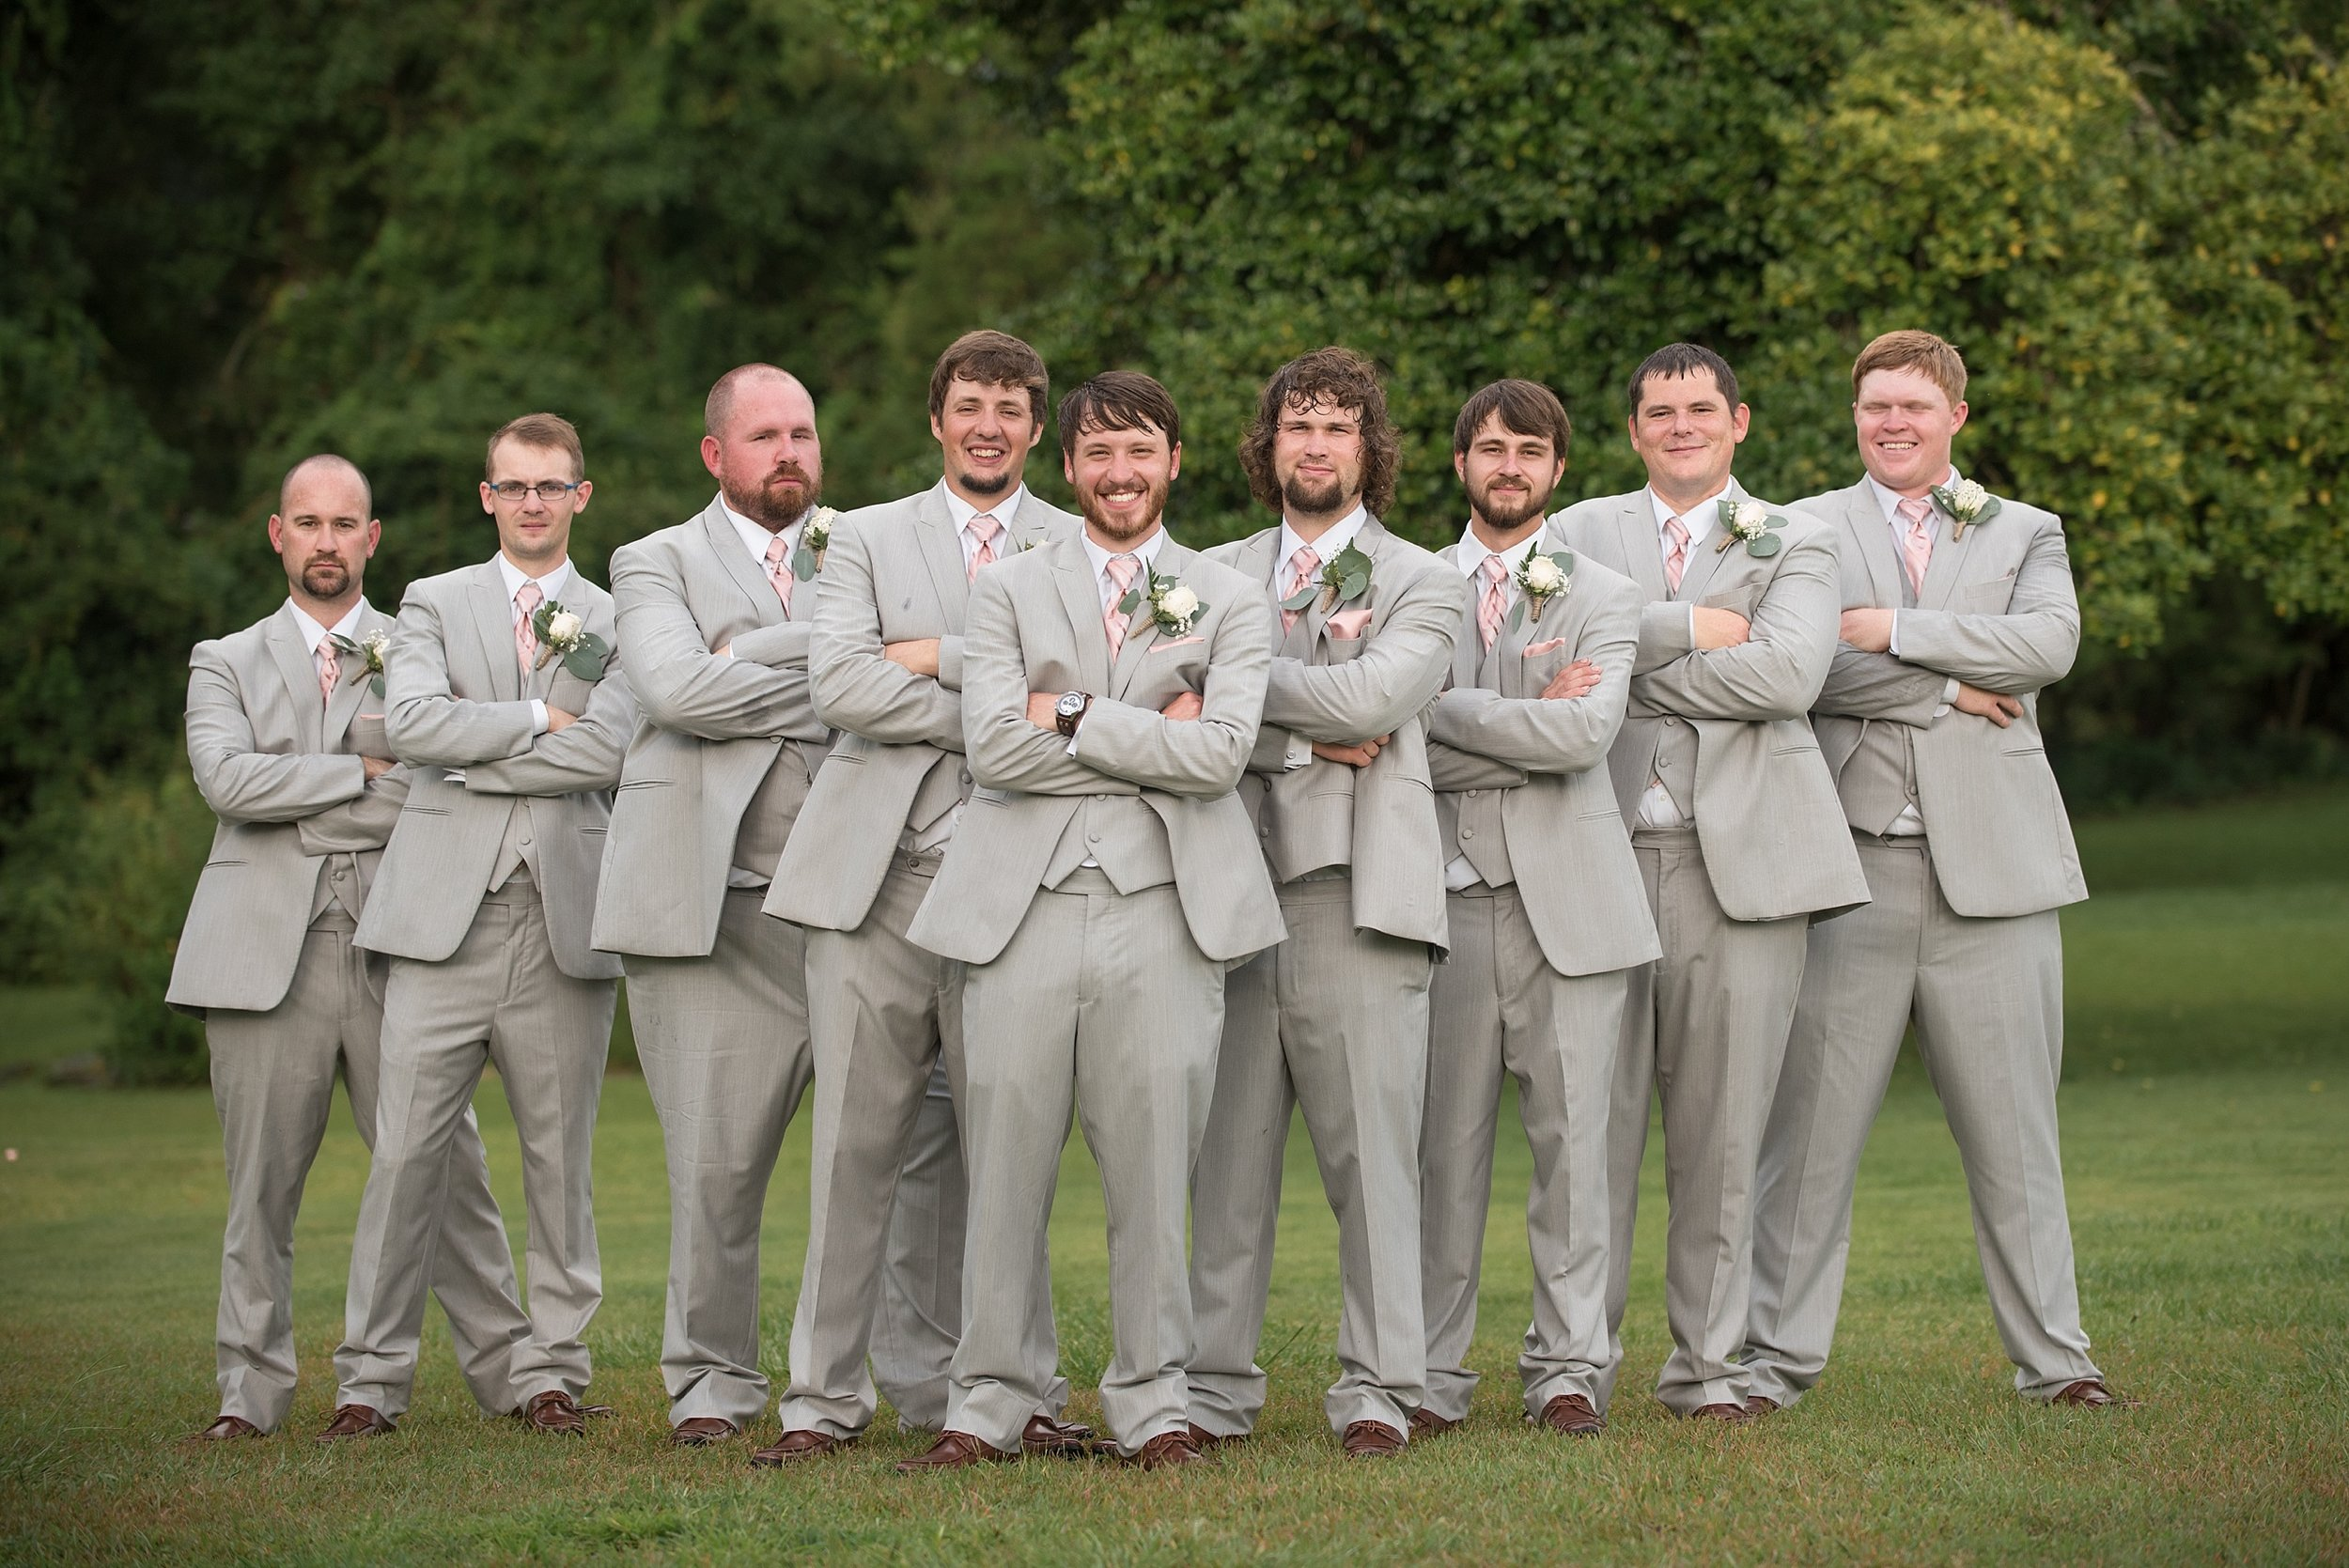 groomsmen in gray tuxedos stand in a V formation with the groom at the point